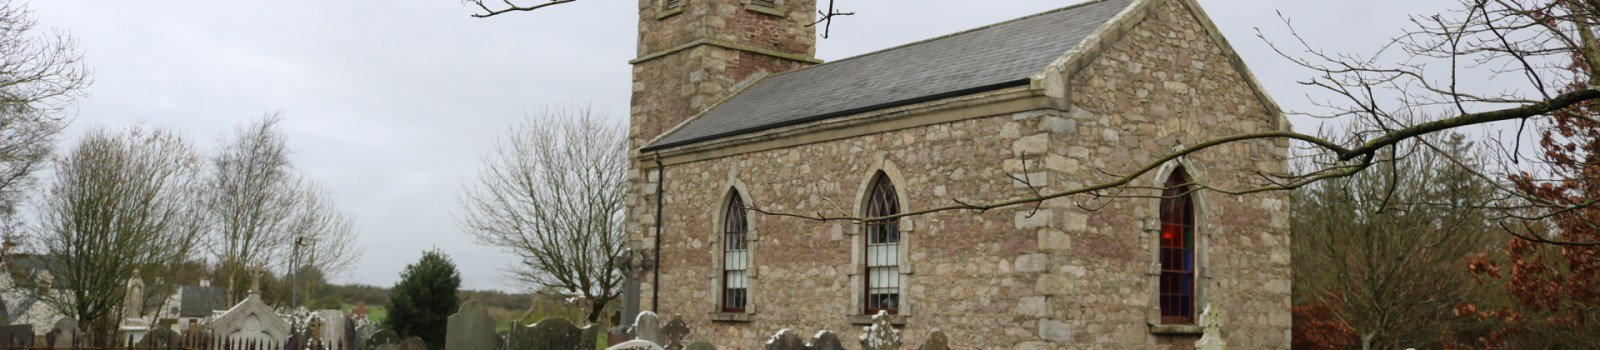 St. Peter's Church, Duncormick